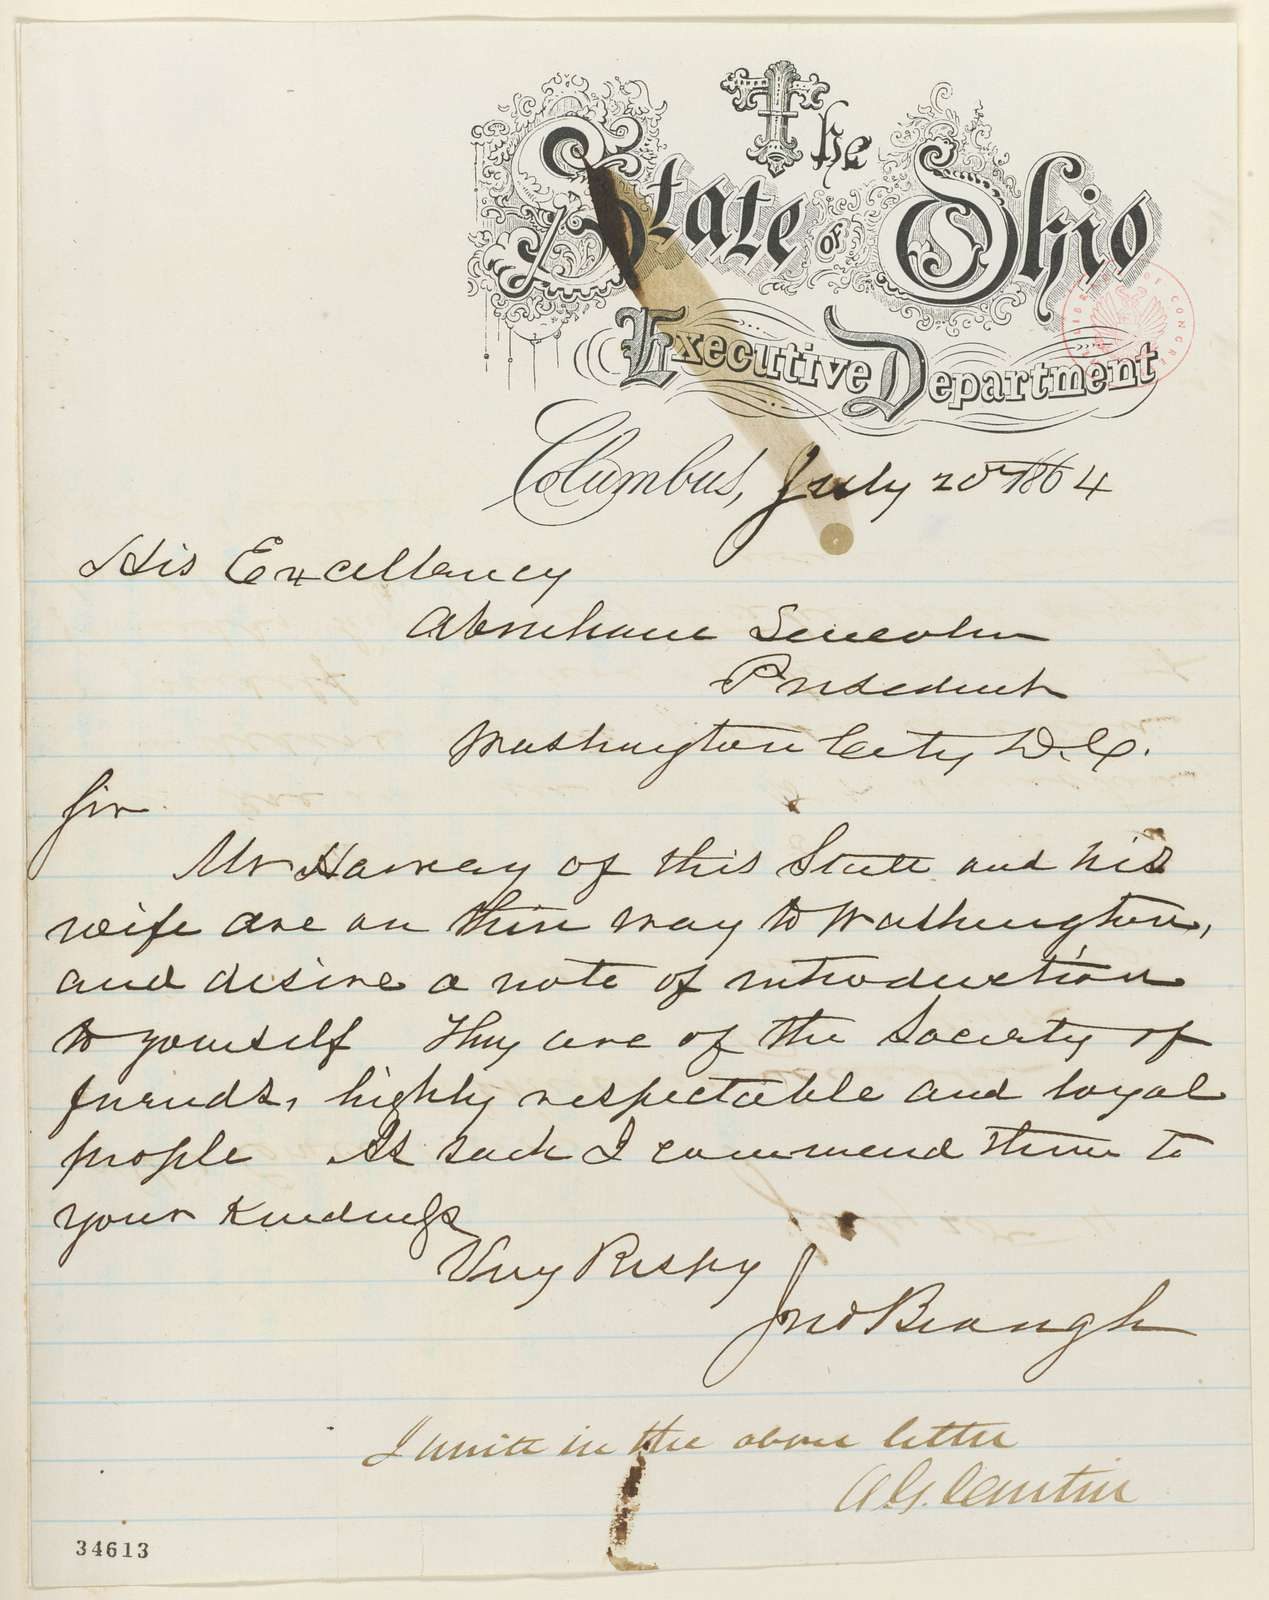 Abraham Lincoln papers: Series 1. General Correspondence. 1833-1916: John Brough to Abraham Lincoln, Wednesday, July 20, 1864 (Introduction; endorsed by Andrew G. Curtin)